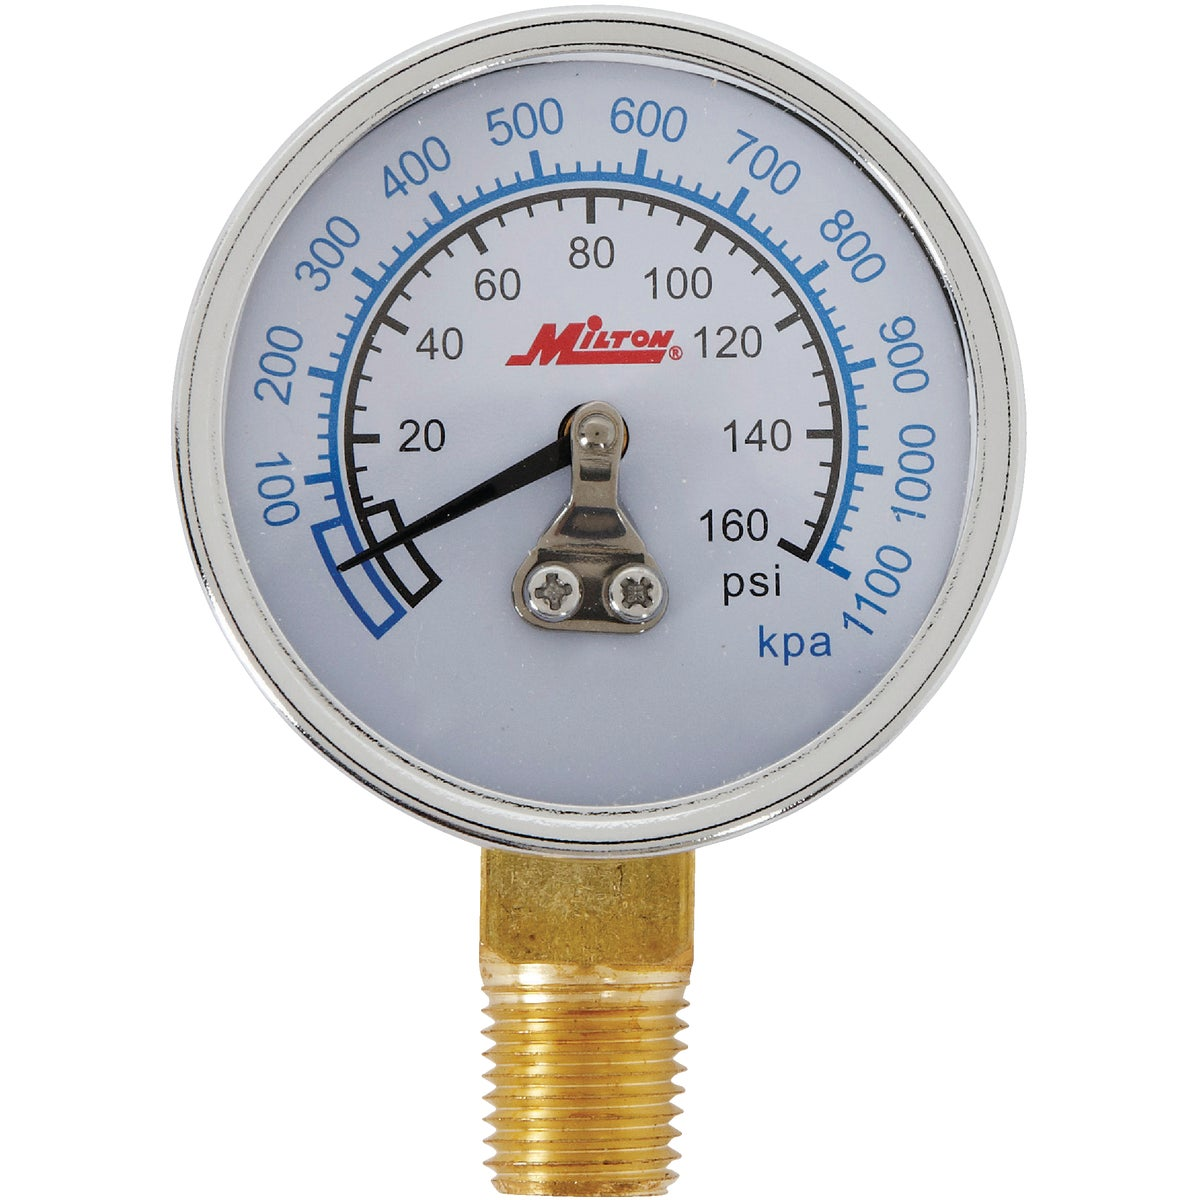 1/4NPT BOT MOUNT GAGE - 1194 by Milton Ind/ Incom